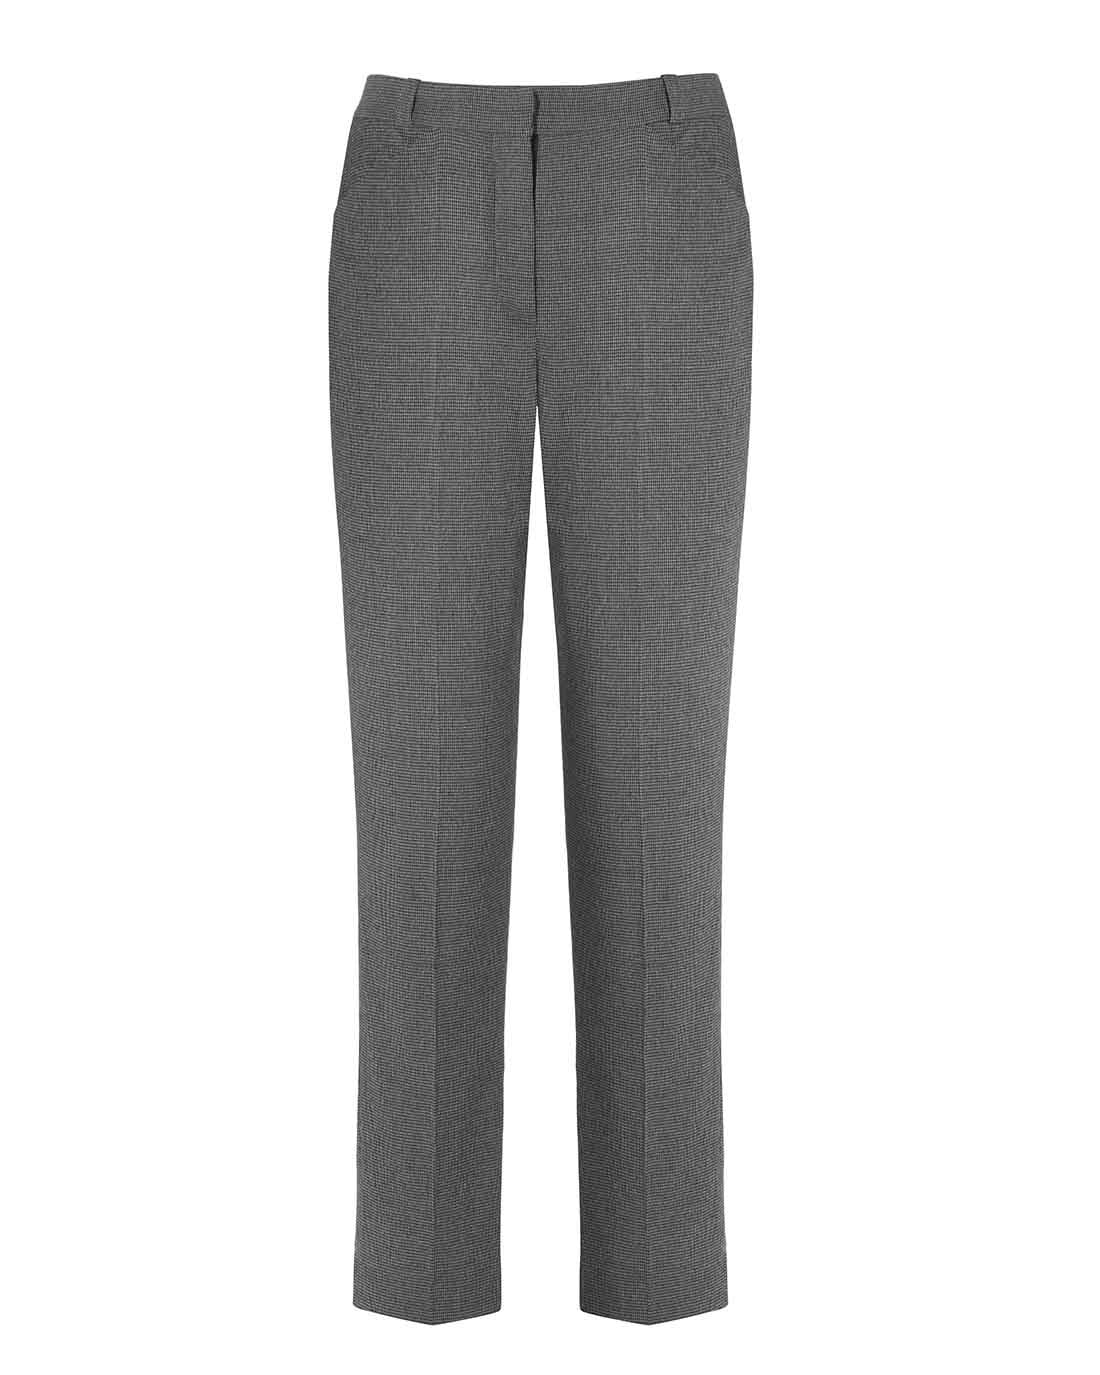 FEARLESS TAILORED CIGARETTE DOGTOOTH TROUSER